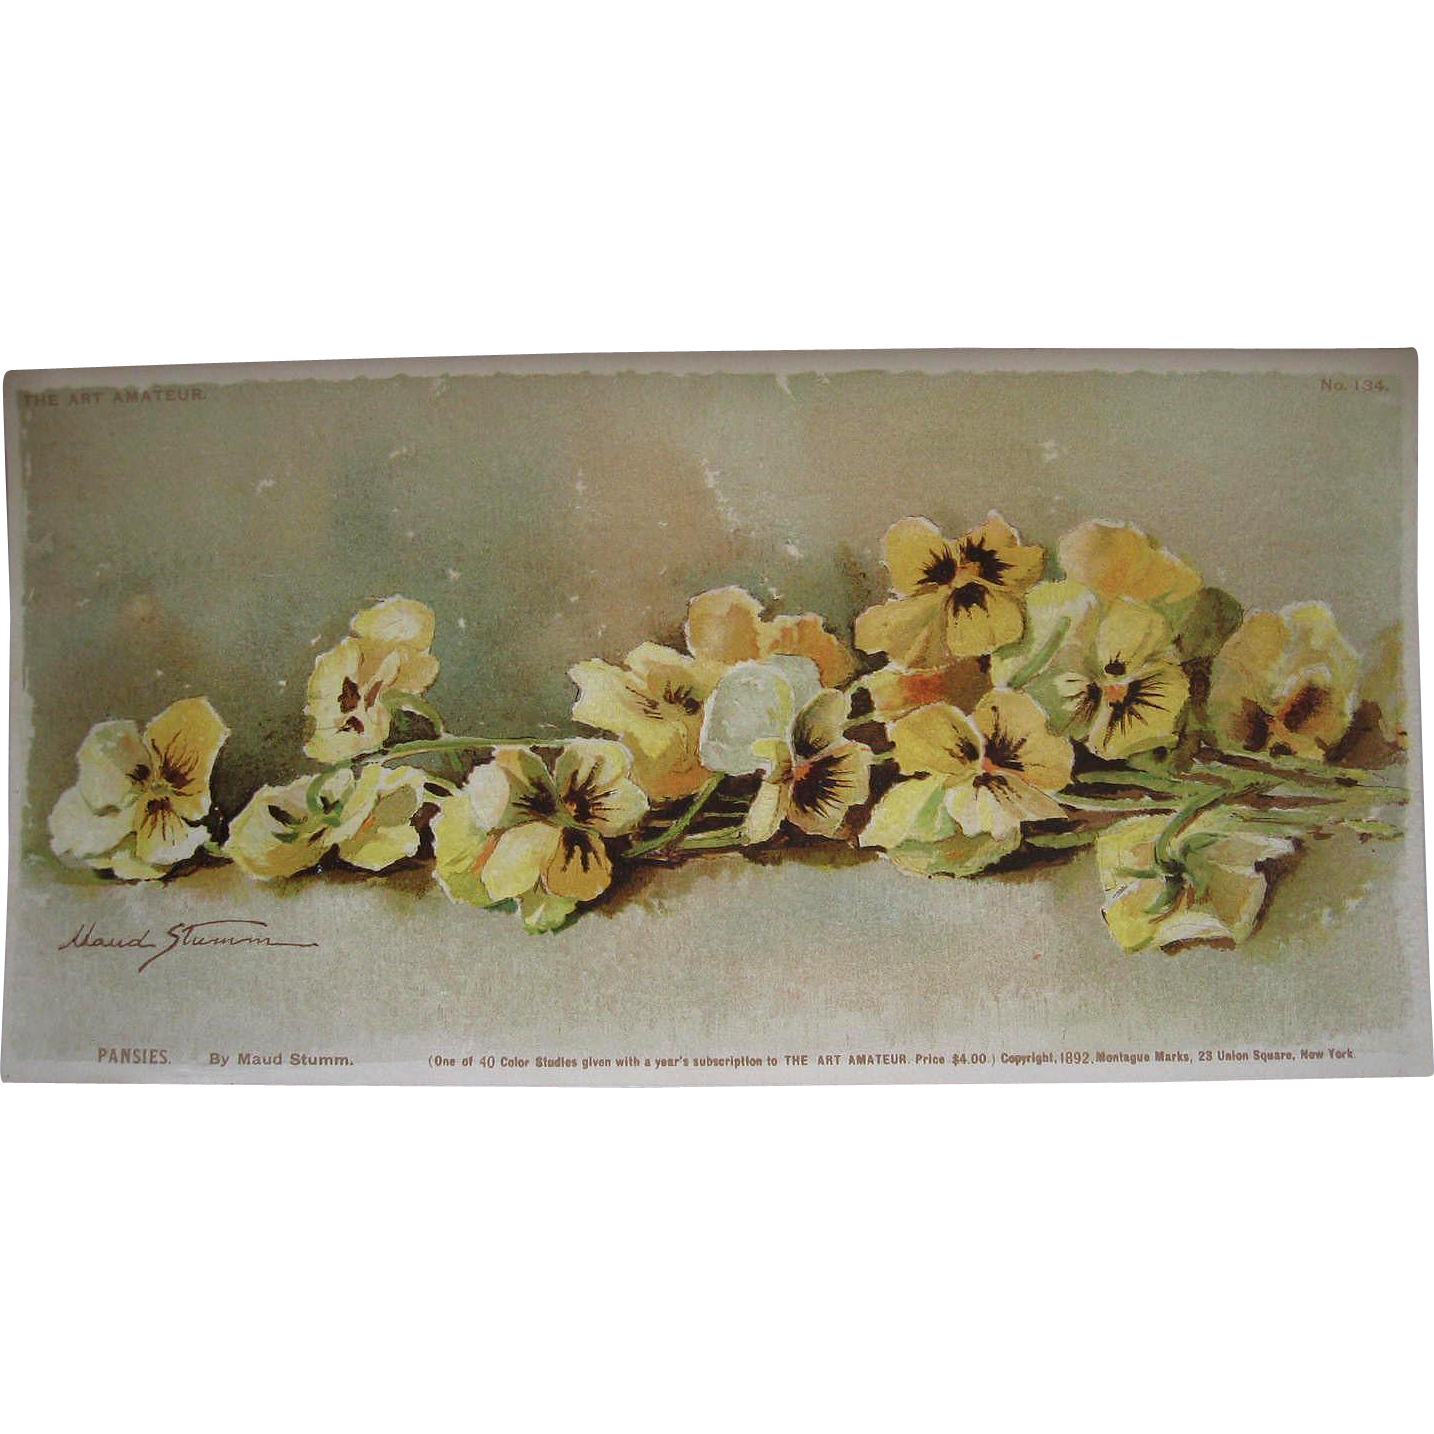 Antique Pansy Print Maud Stumm Victorian Pansies Chromolithograph c1890s